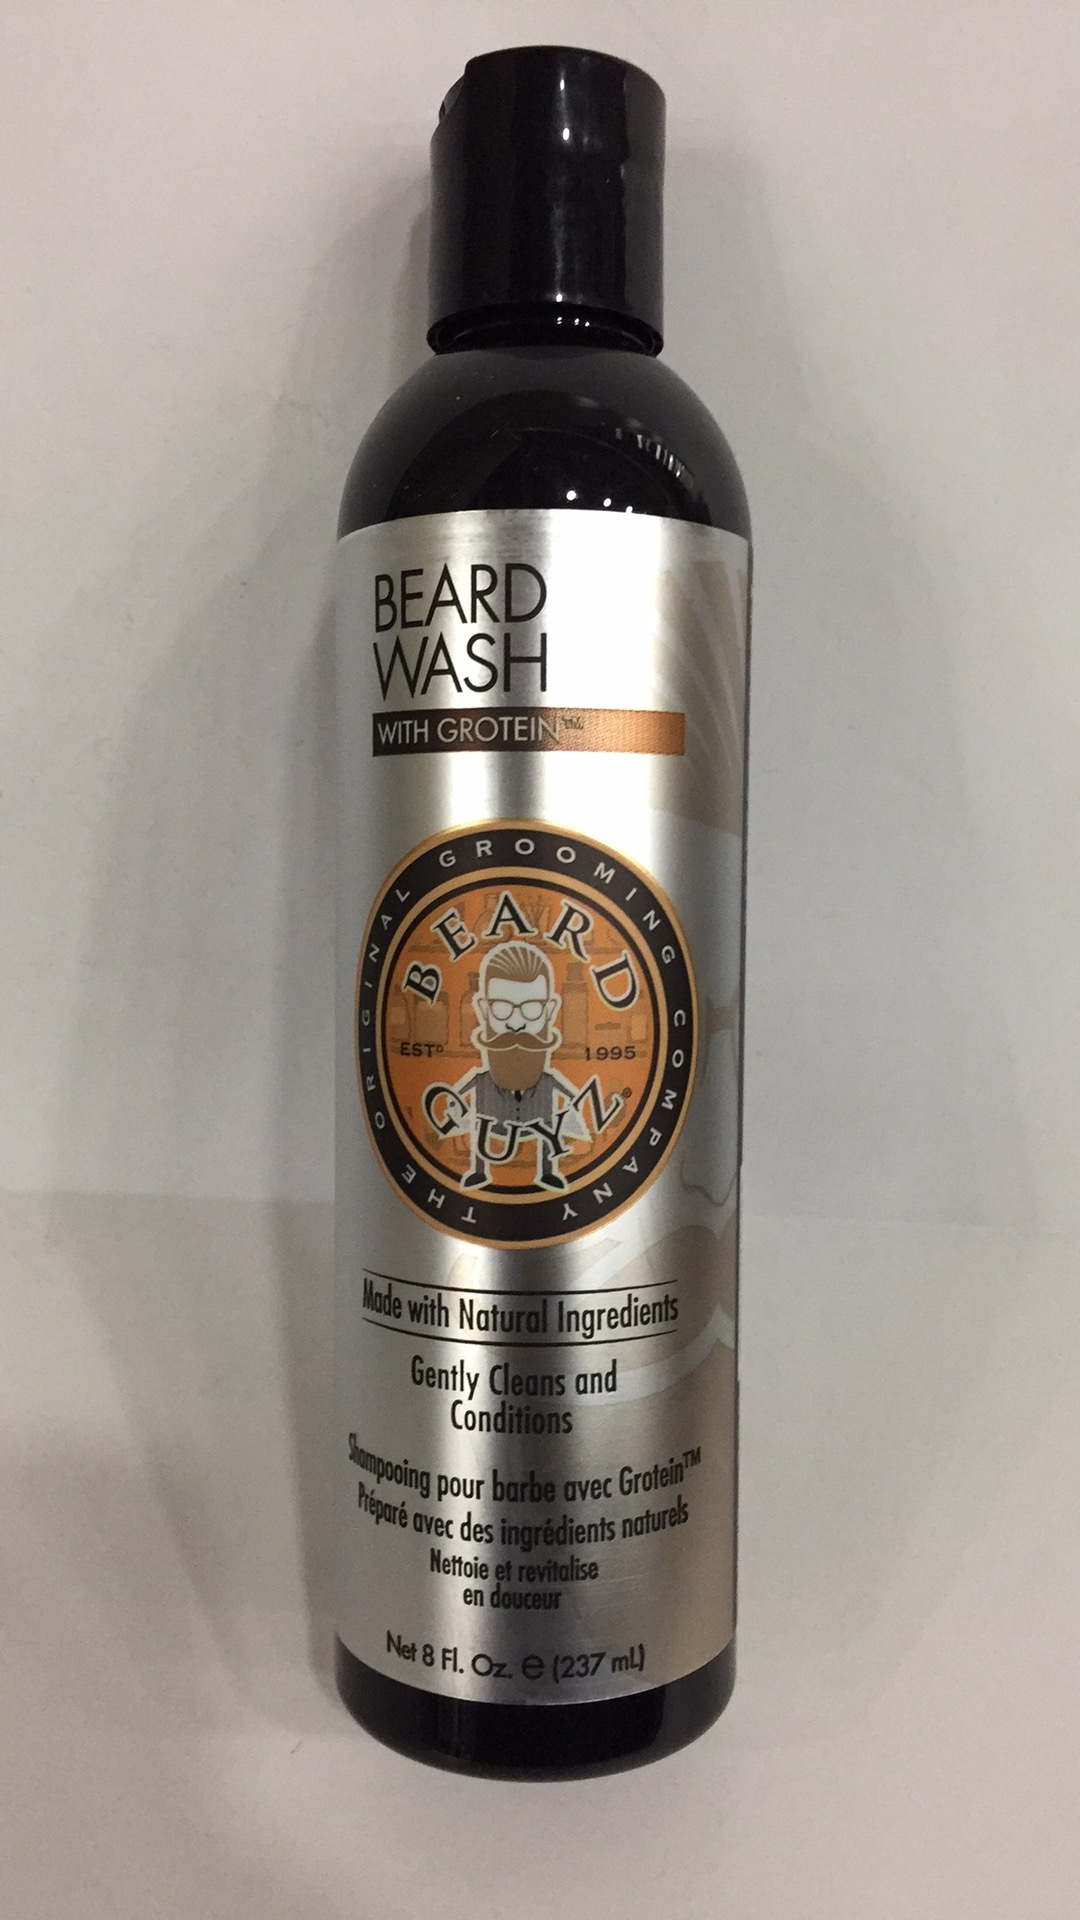 Gently Cleans And Conditions Beard Wash | The Natural